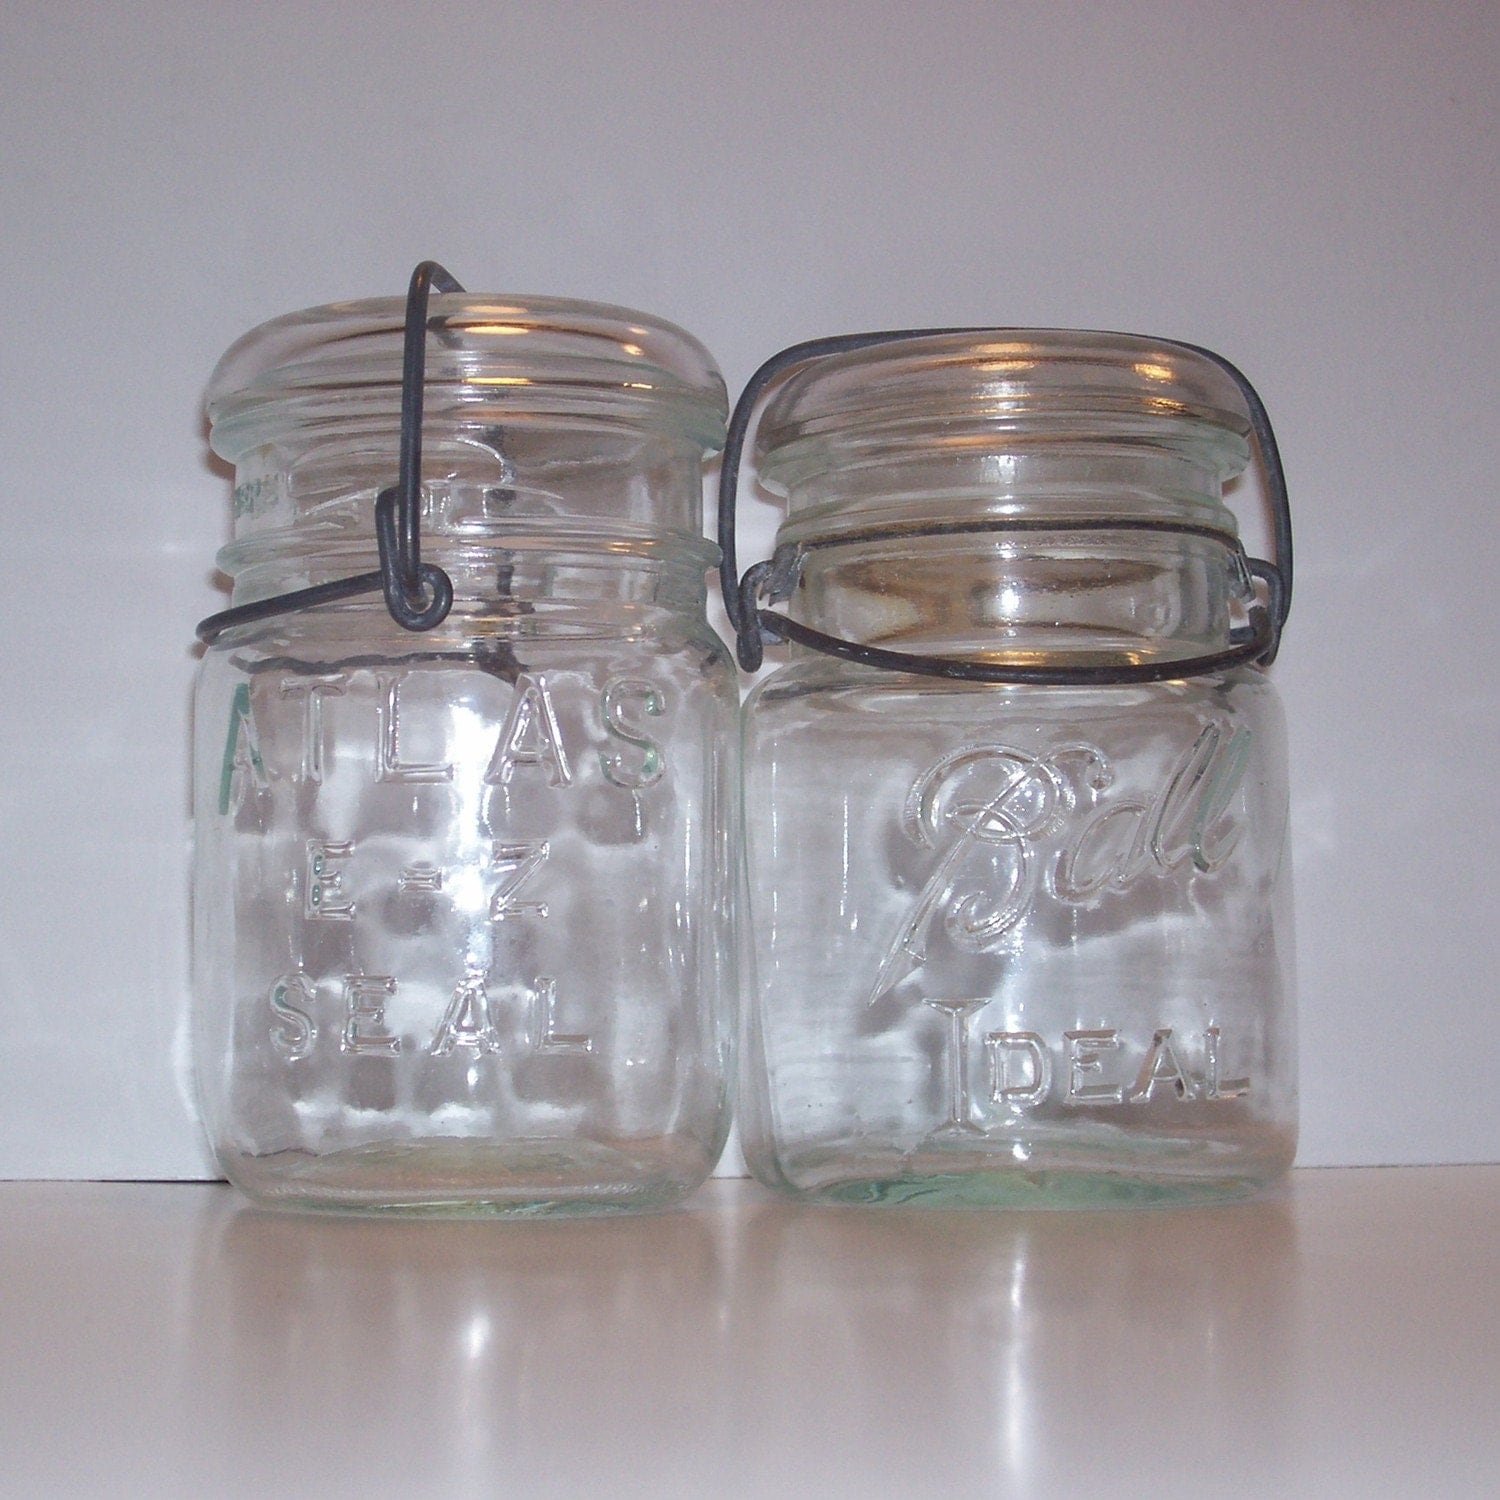 Dating Old Canning Jars - Living Homegrown